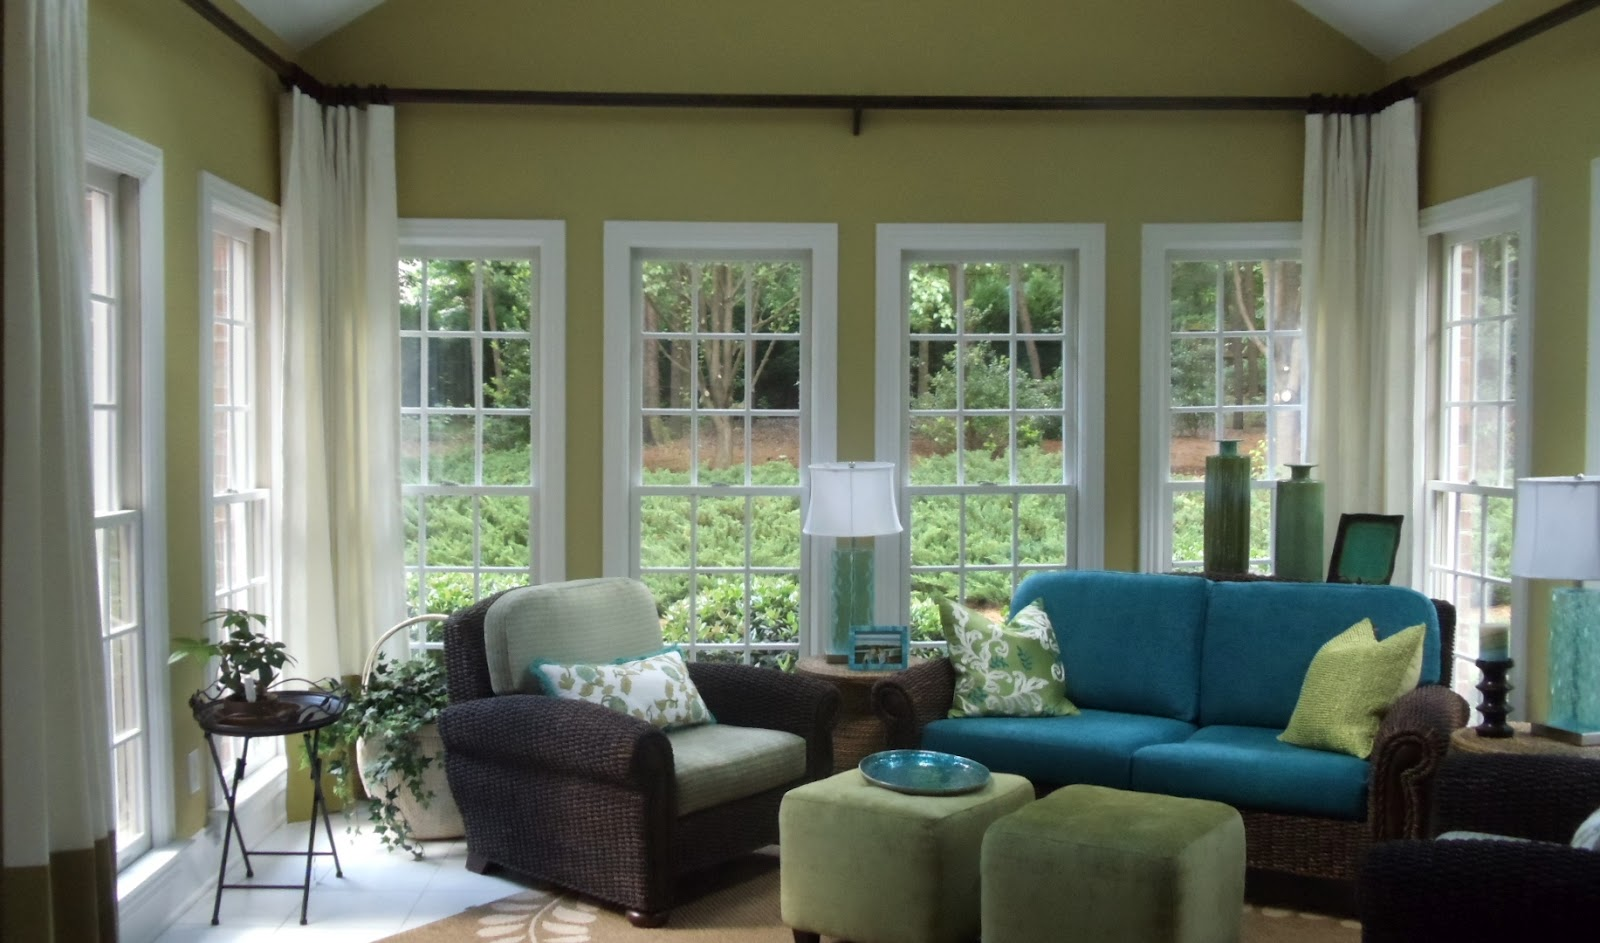 Impressive sun room concept ideas for Home window design ideas